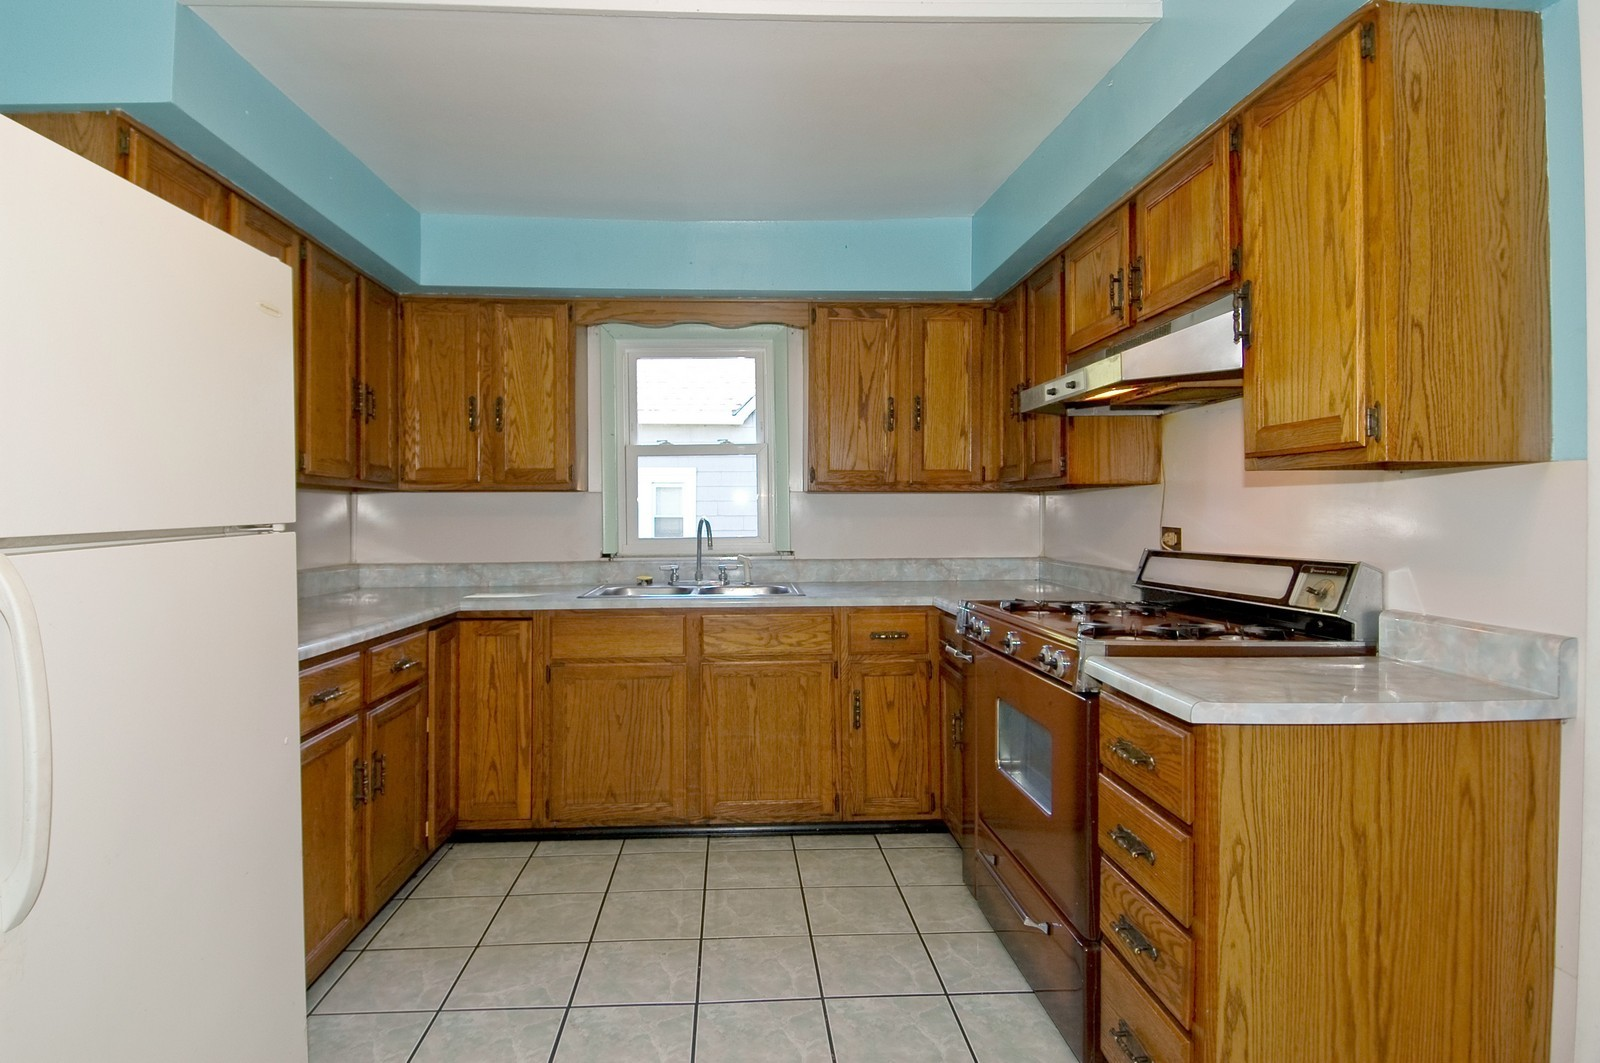 Real Estate Photography - 440 Addison St, Elgin, IL, 60120 - Kitchen